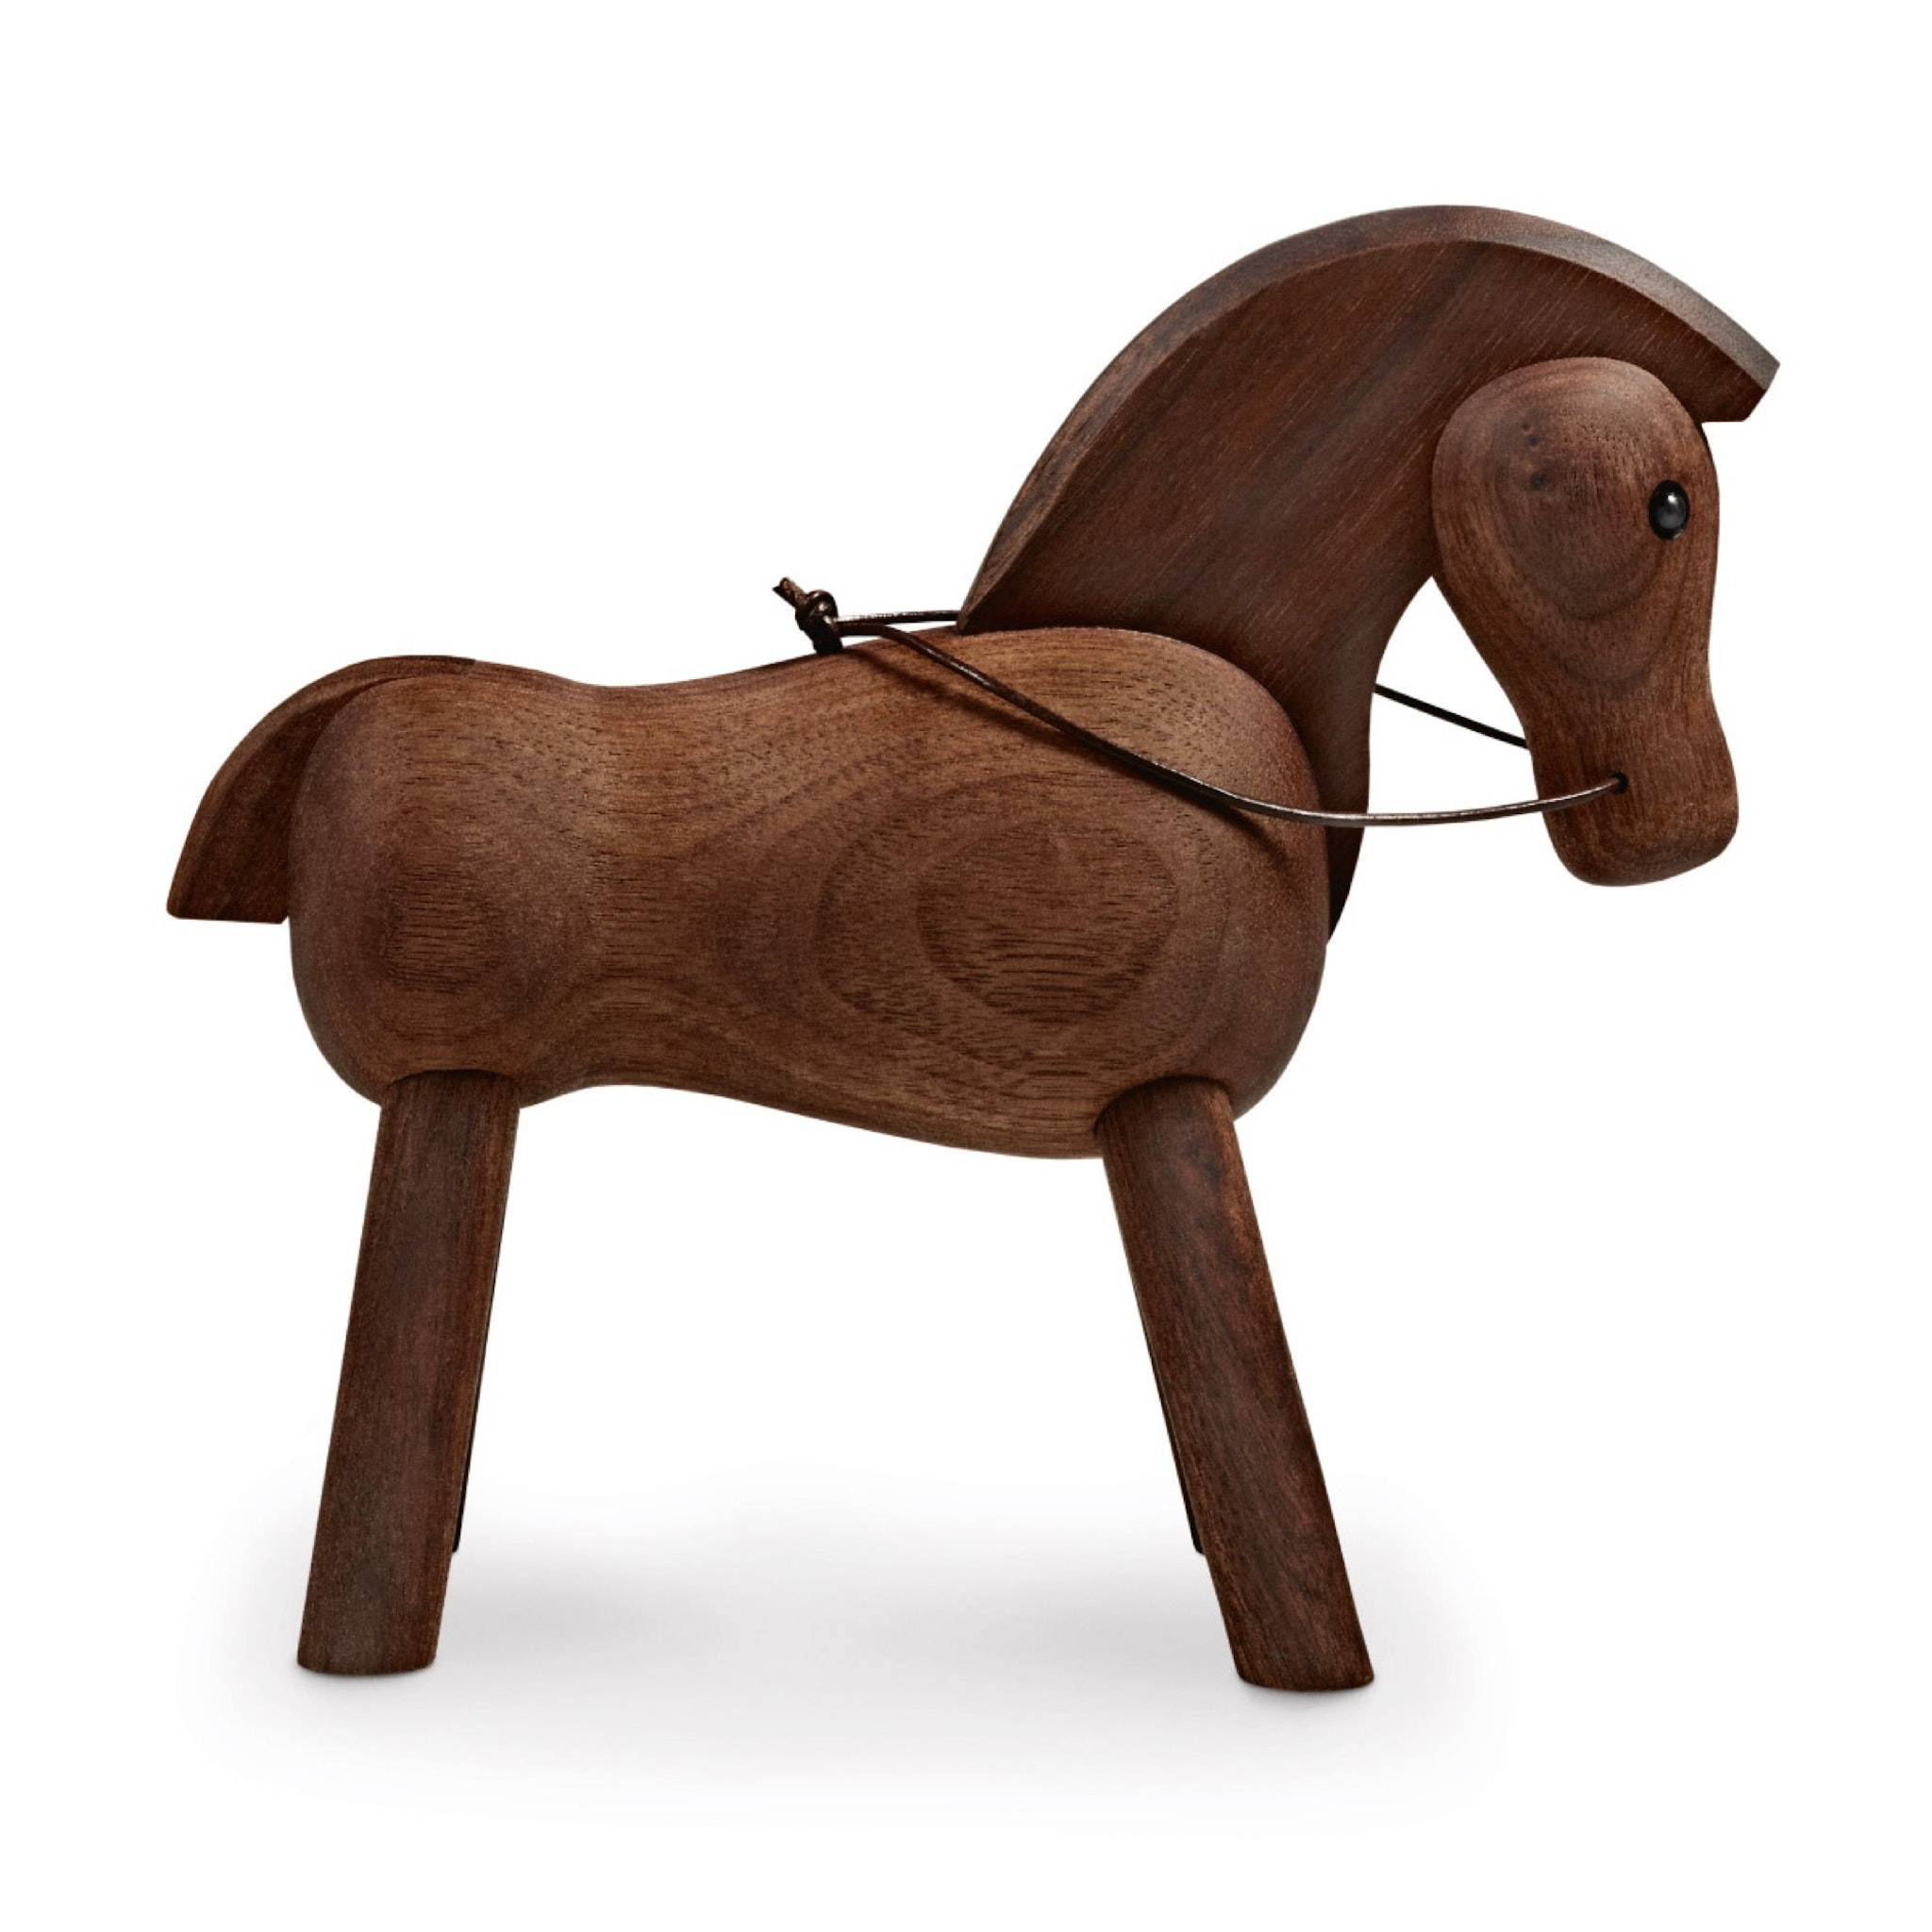 Wooden Horse by Rosendahl